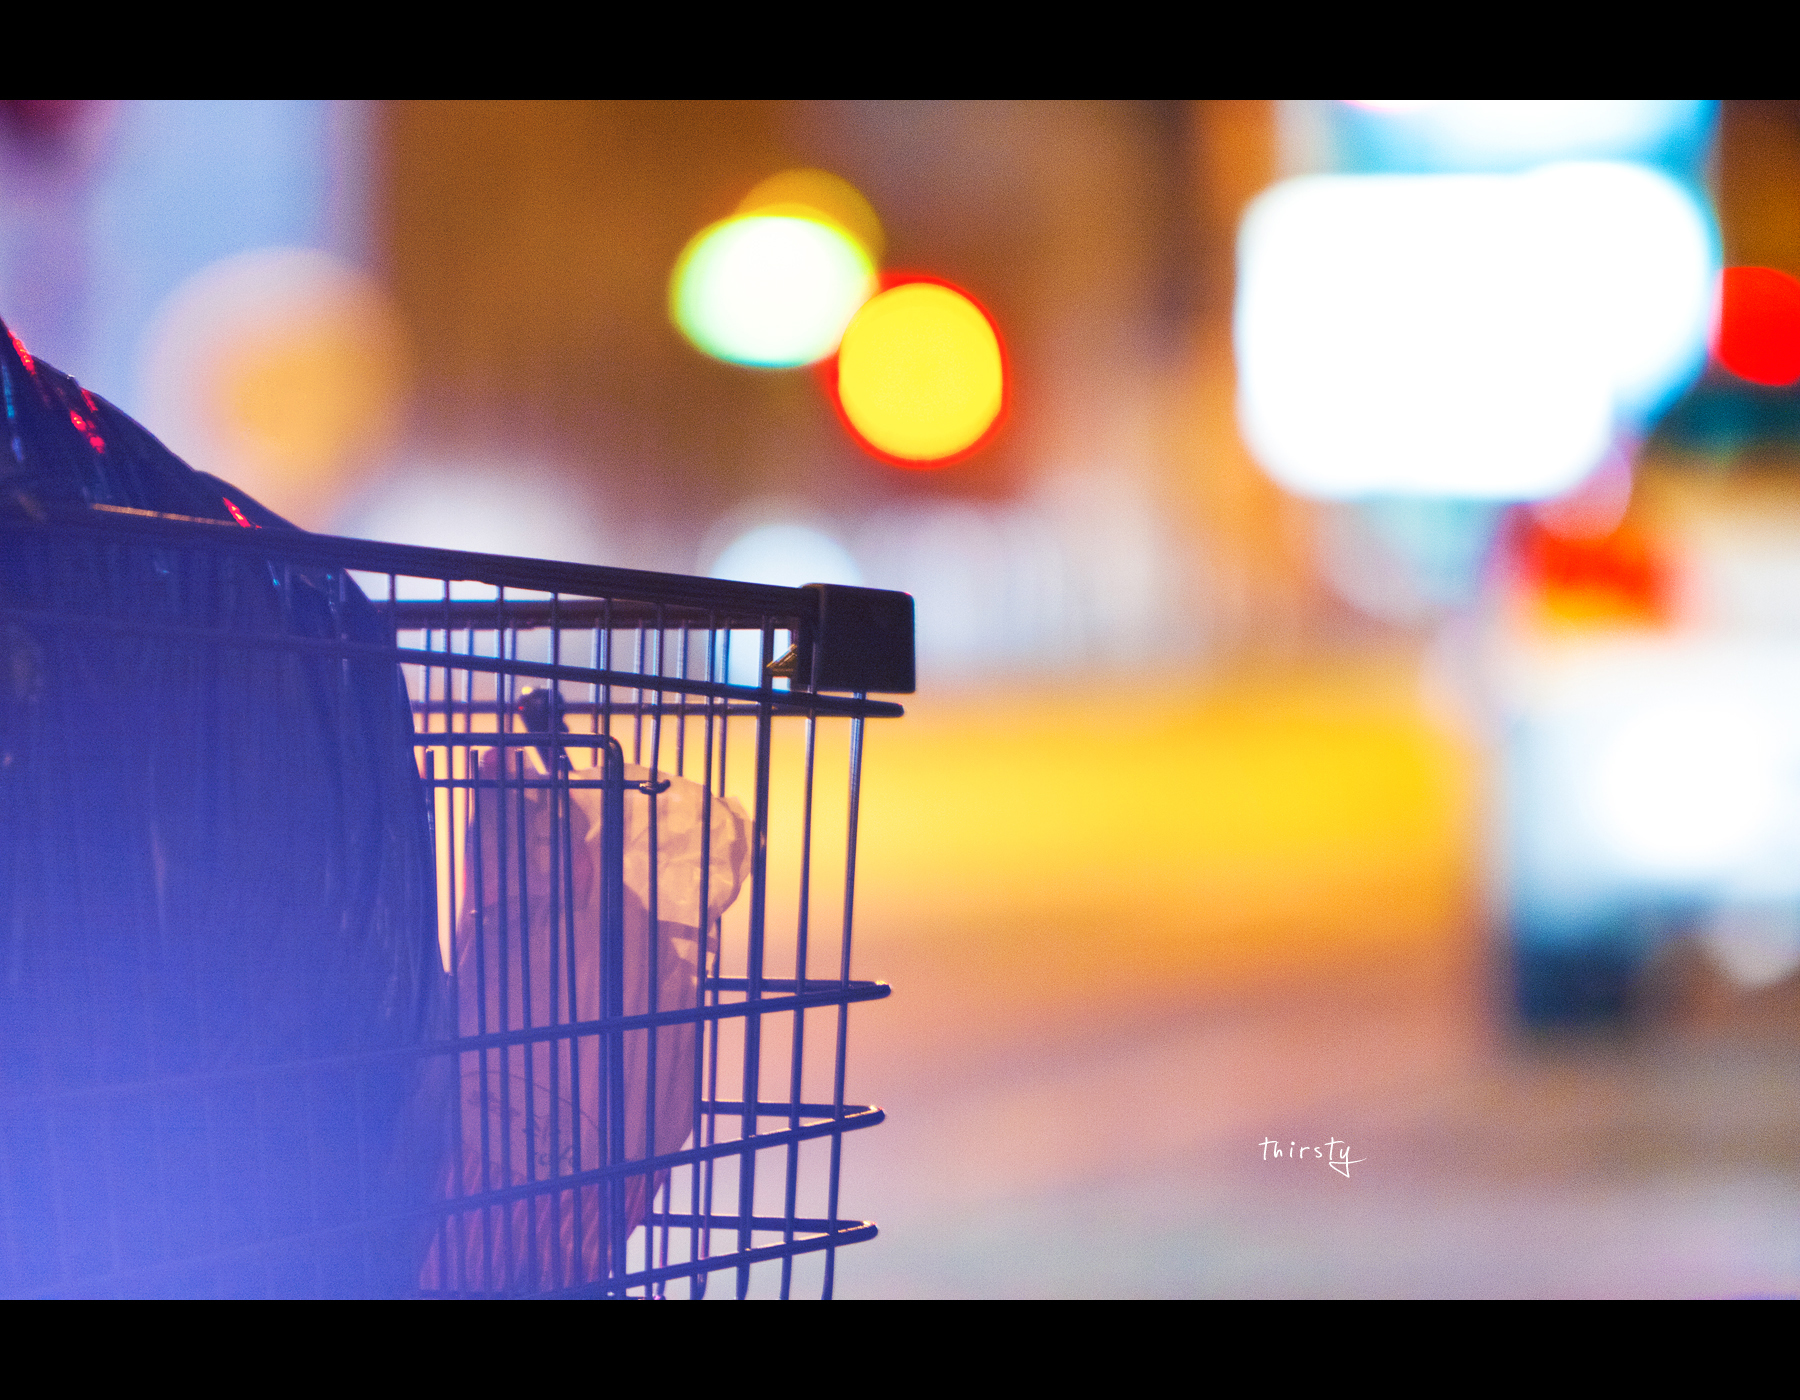 Project 365, Day 361, 361/365, Bokeh, flare, shopping cart, nightshot, bokeh balls, bokeh bubbles, canon EF 70-200 f2.8 IS,